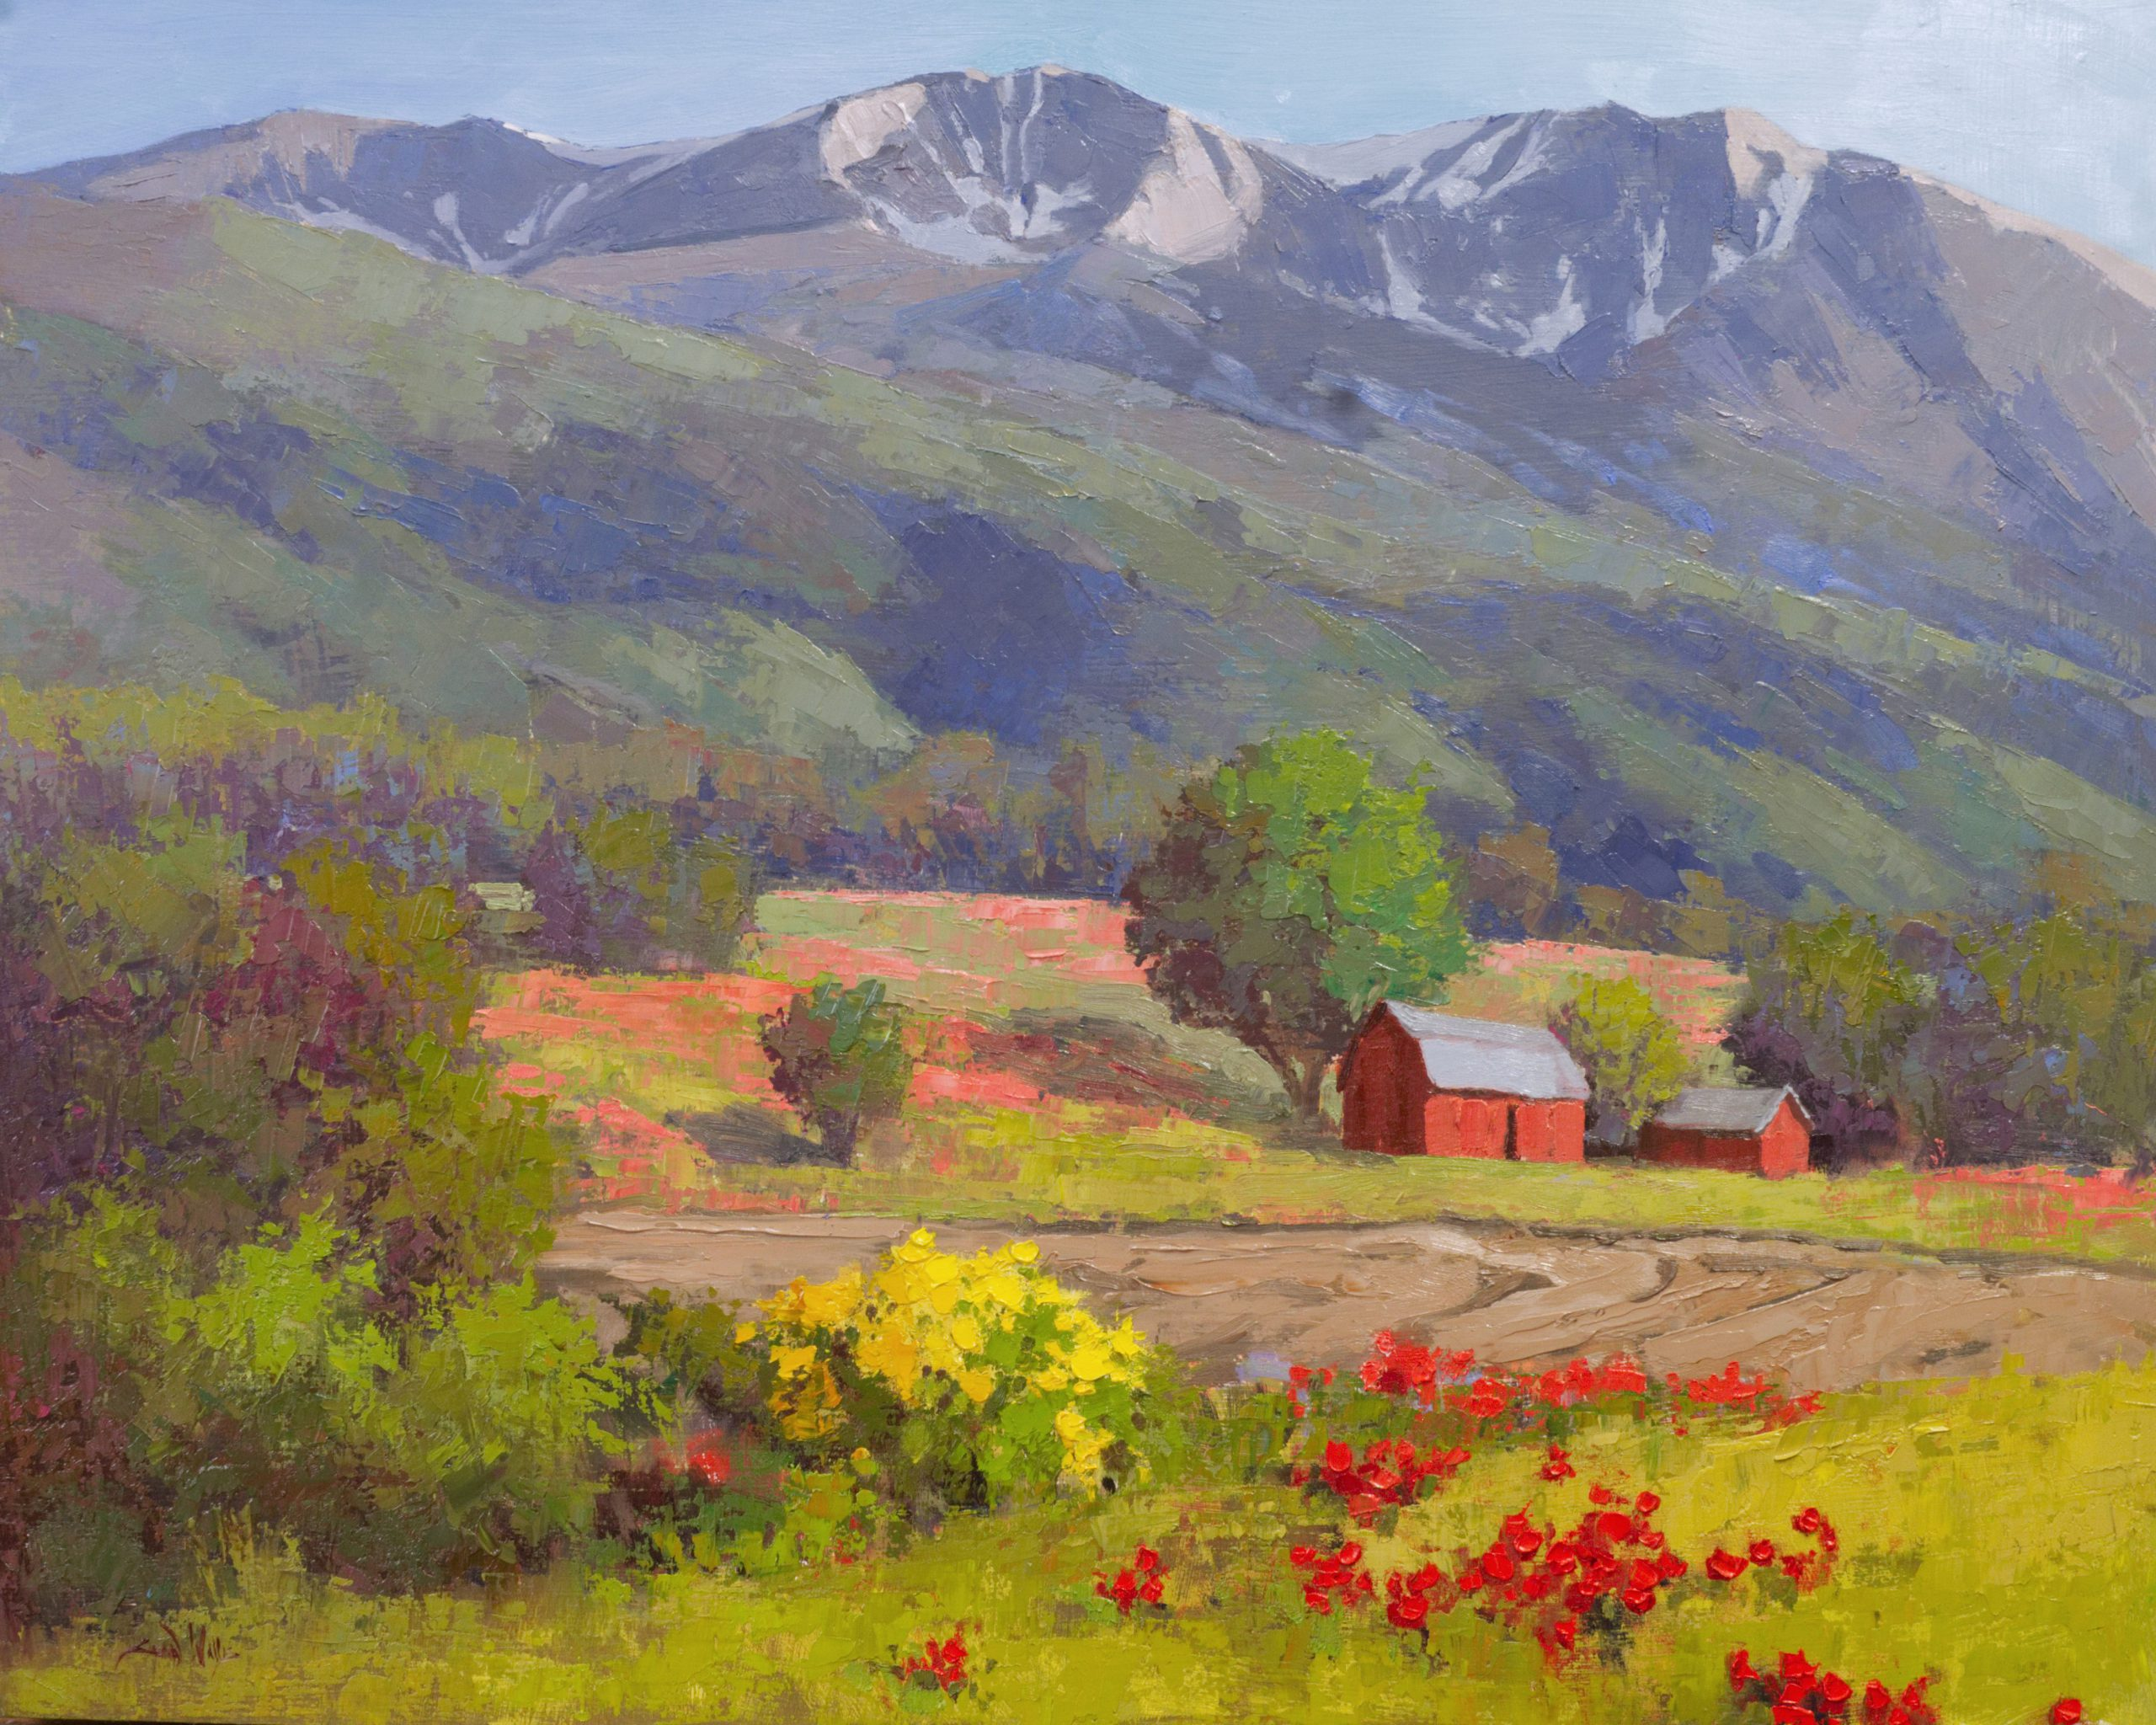 Sean Wallis - Below Mount Sopris